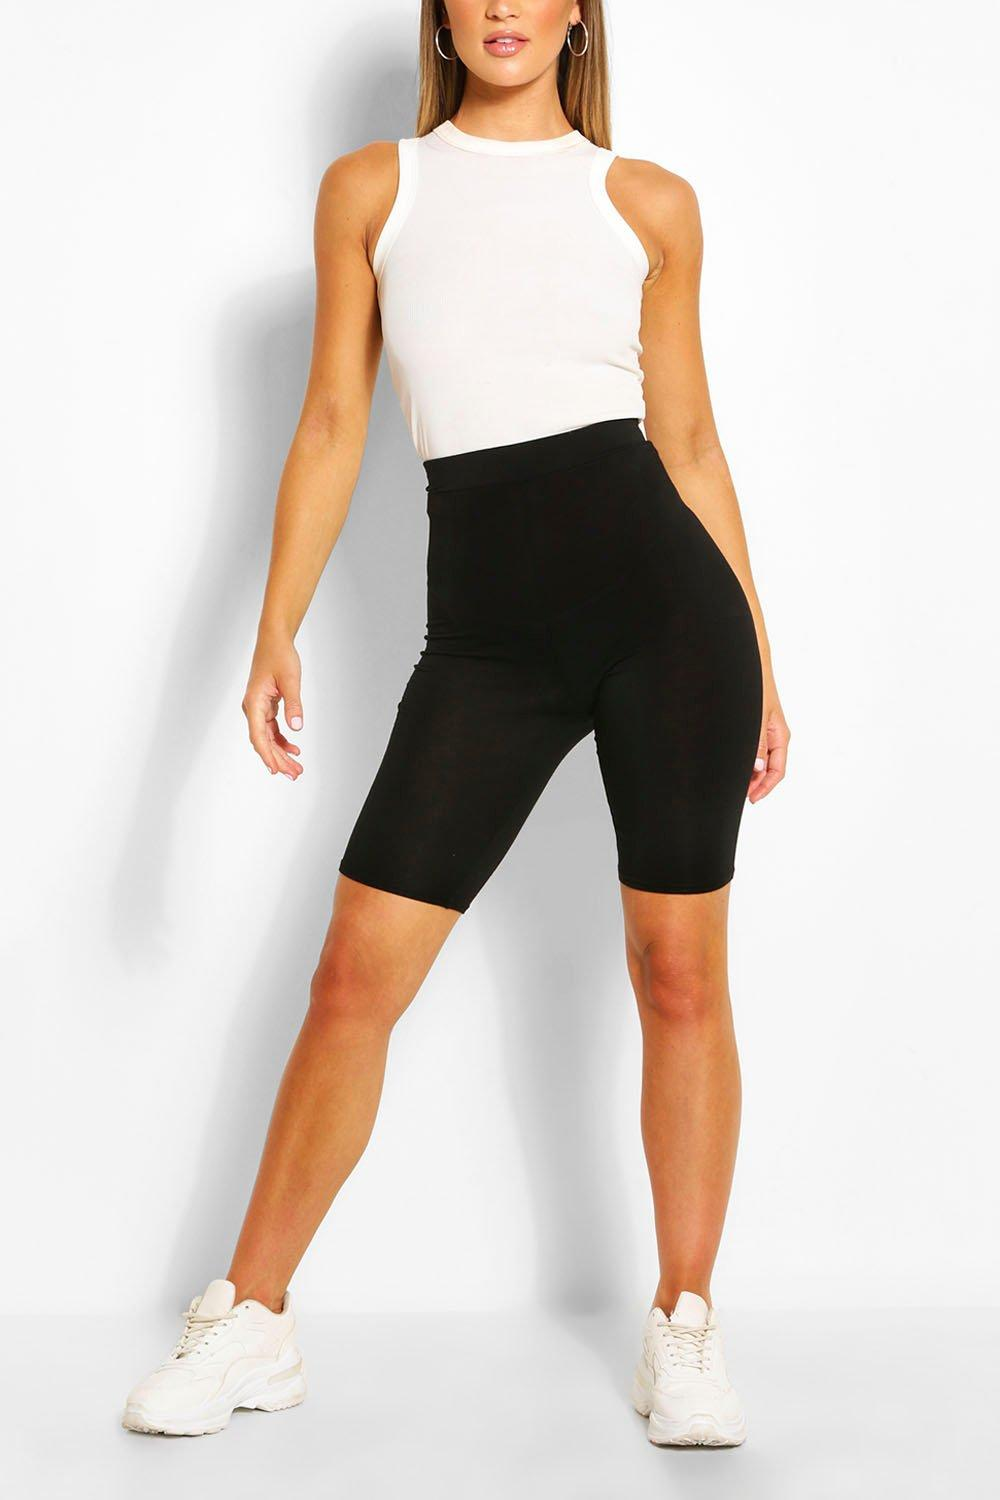 Image result for cycling shorts